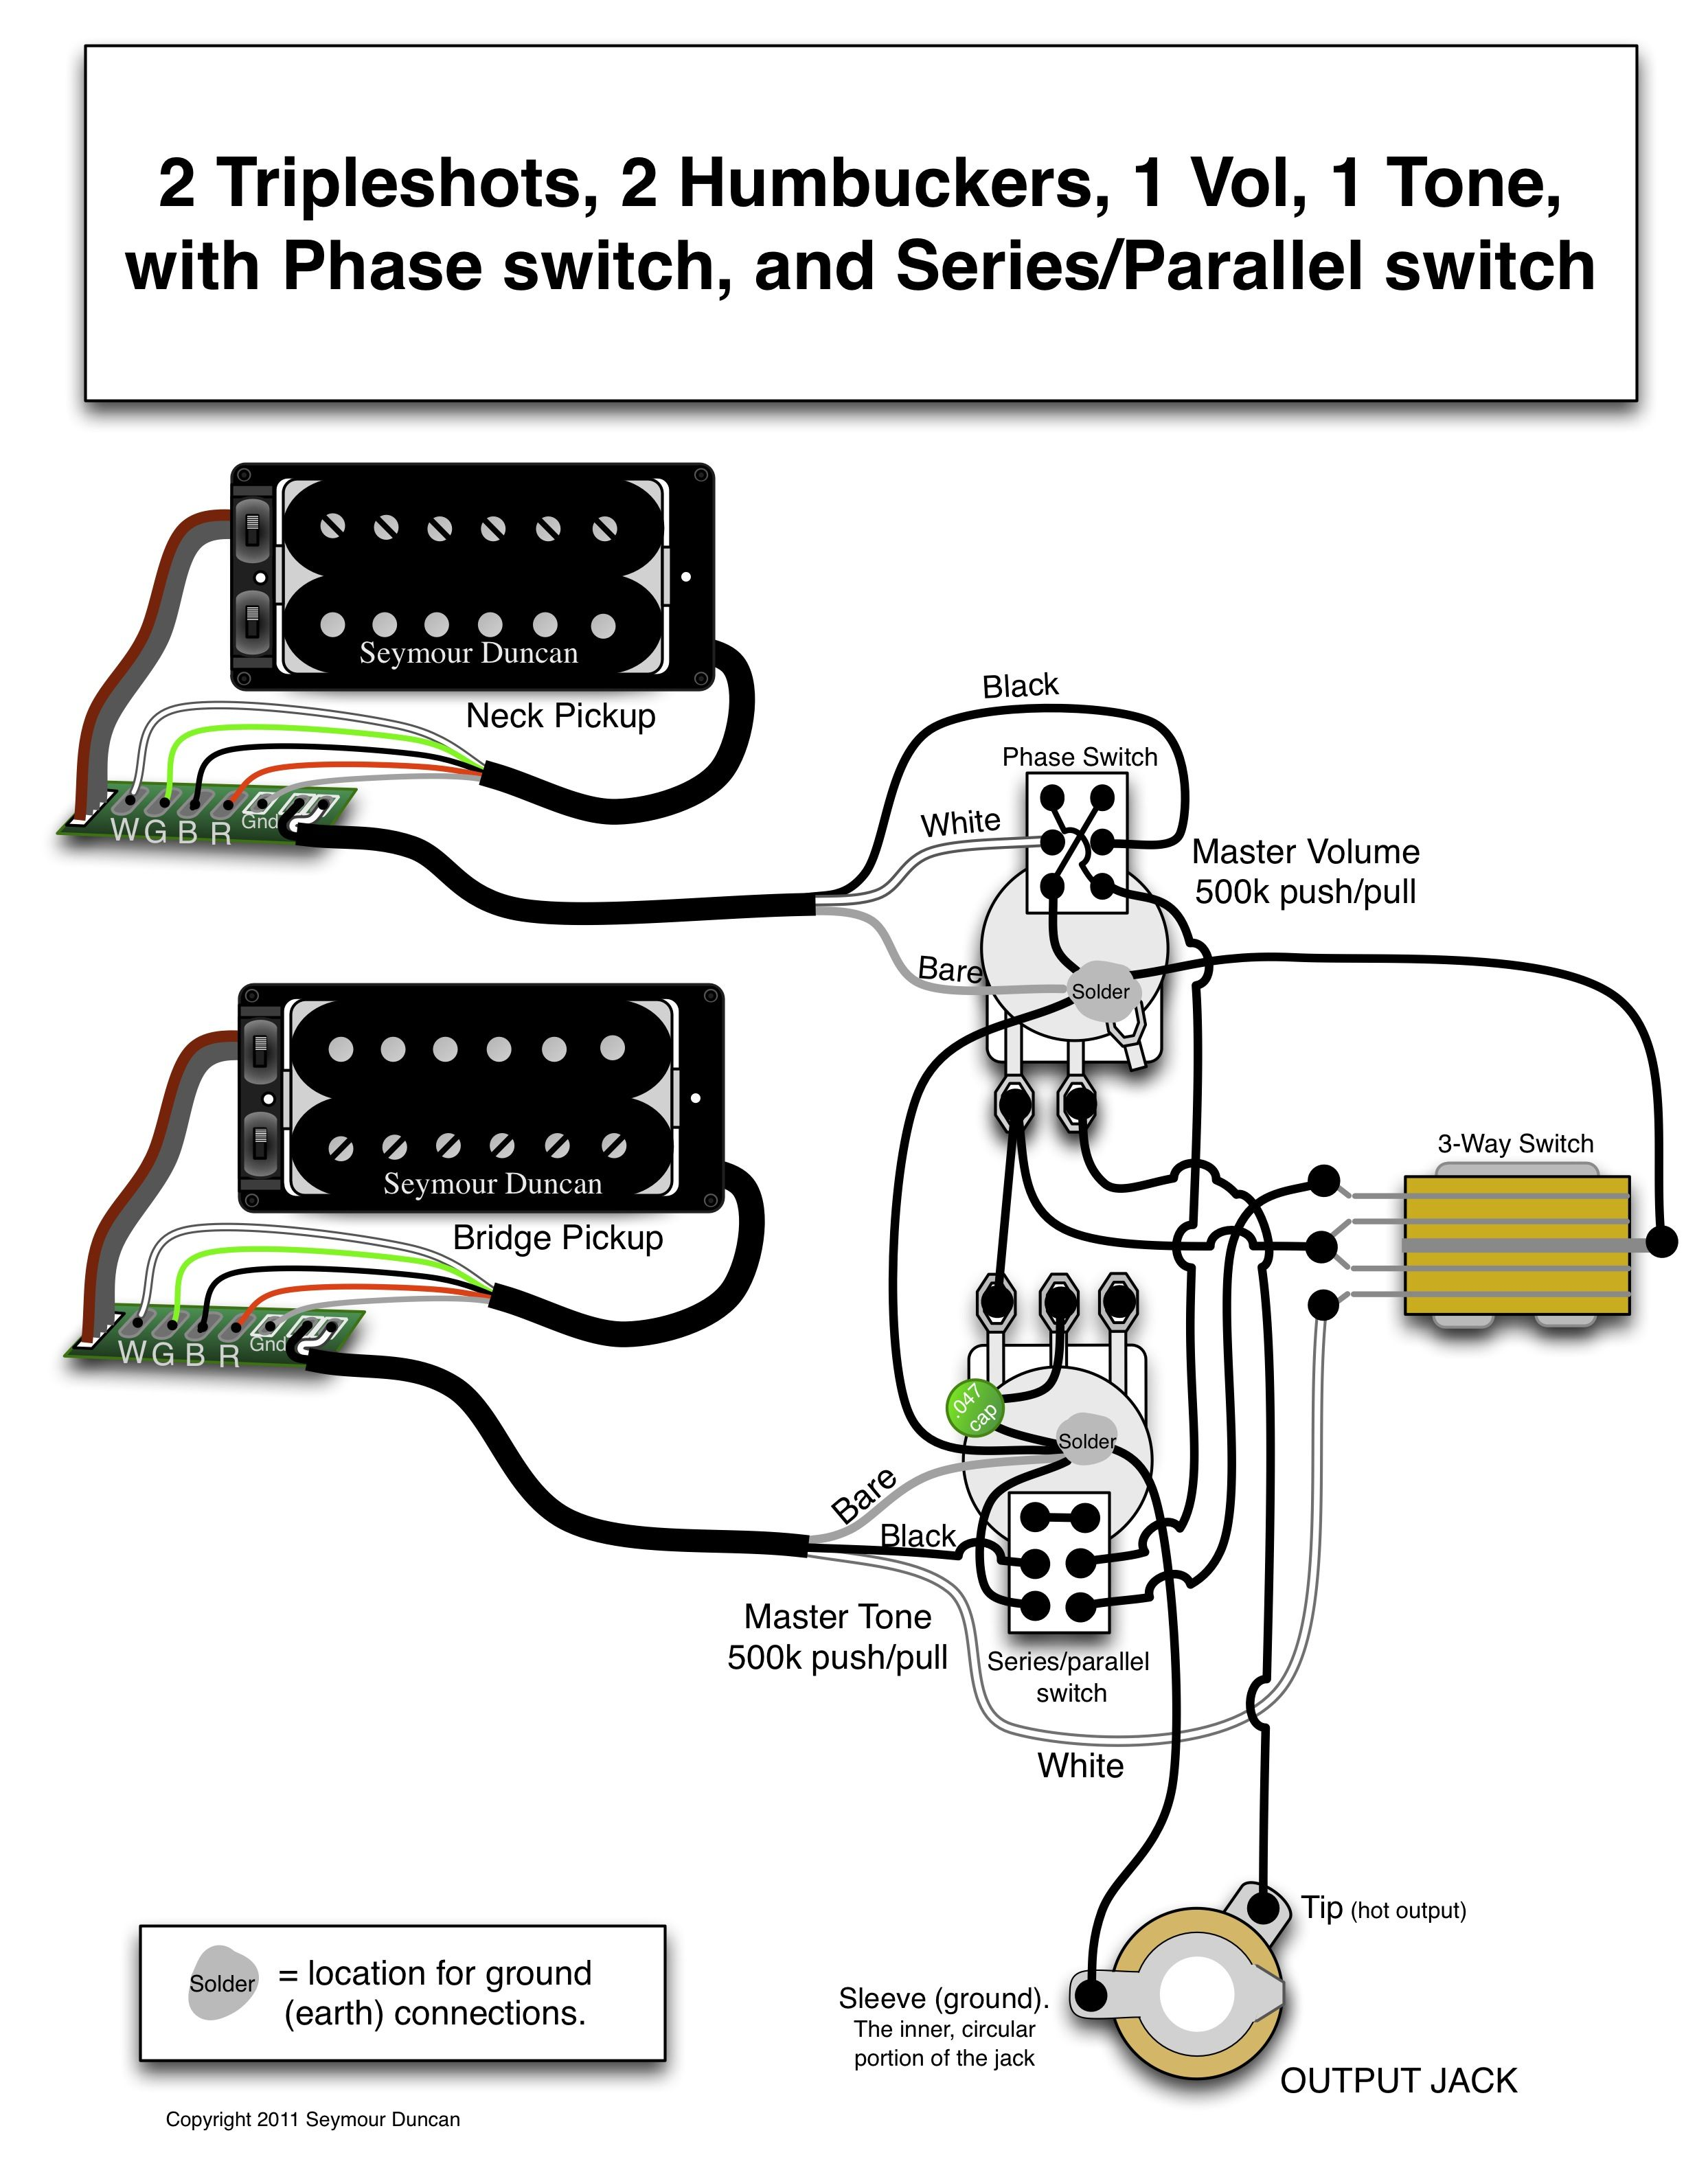 11e7a4ce932088841833425d14ebd2ea seymour duncan wiring diagram 2 triple shots, 2 humbuckers, 1 dual humbucker wiring diagram at soozxer.org